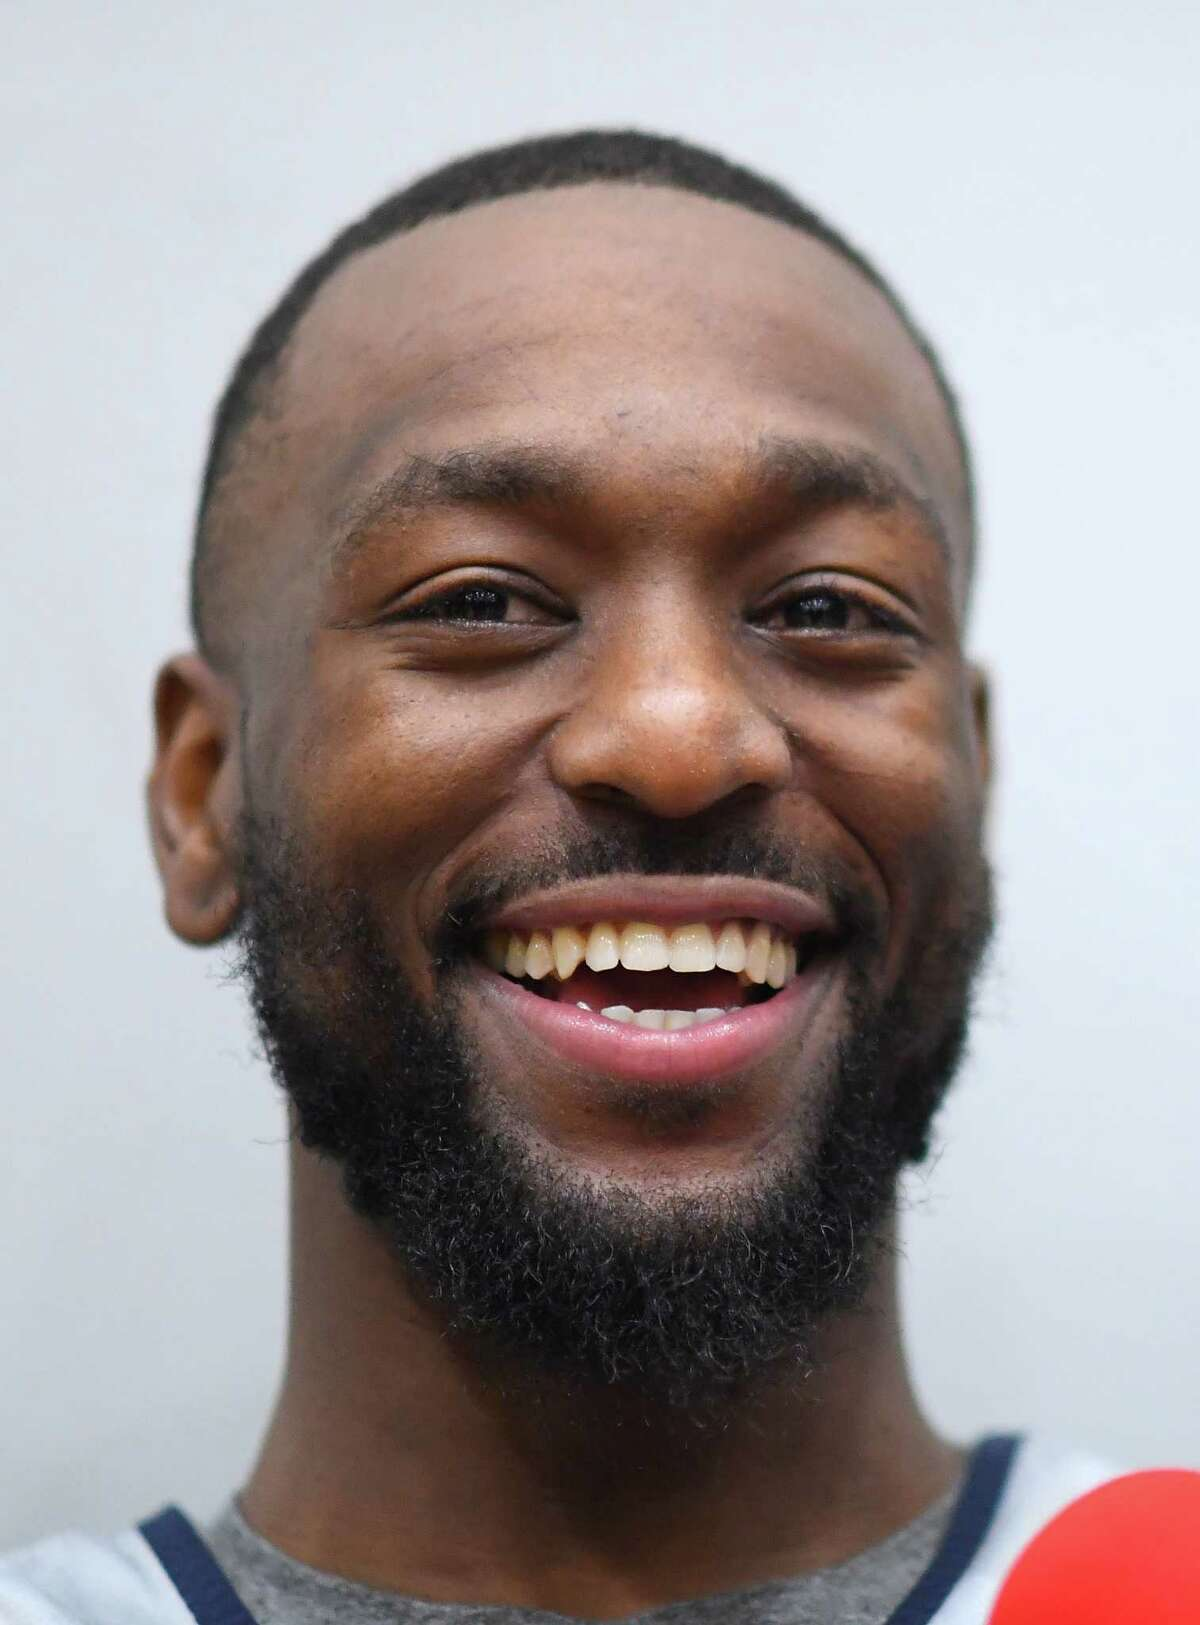 MELBOURNE, AUSTRALIA - AUGUST 20: Kemba Walker of the USA talks to the media during a Team United State of America National Basketball team training session at Melbourne Sports and Aquatic Centre on August 20, 2019 in Melbourne, Australia. (Photo by Quinn Rooney/Getty Images)